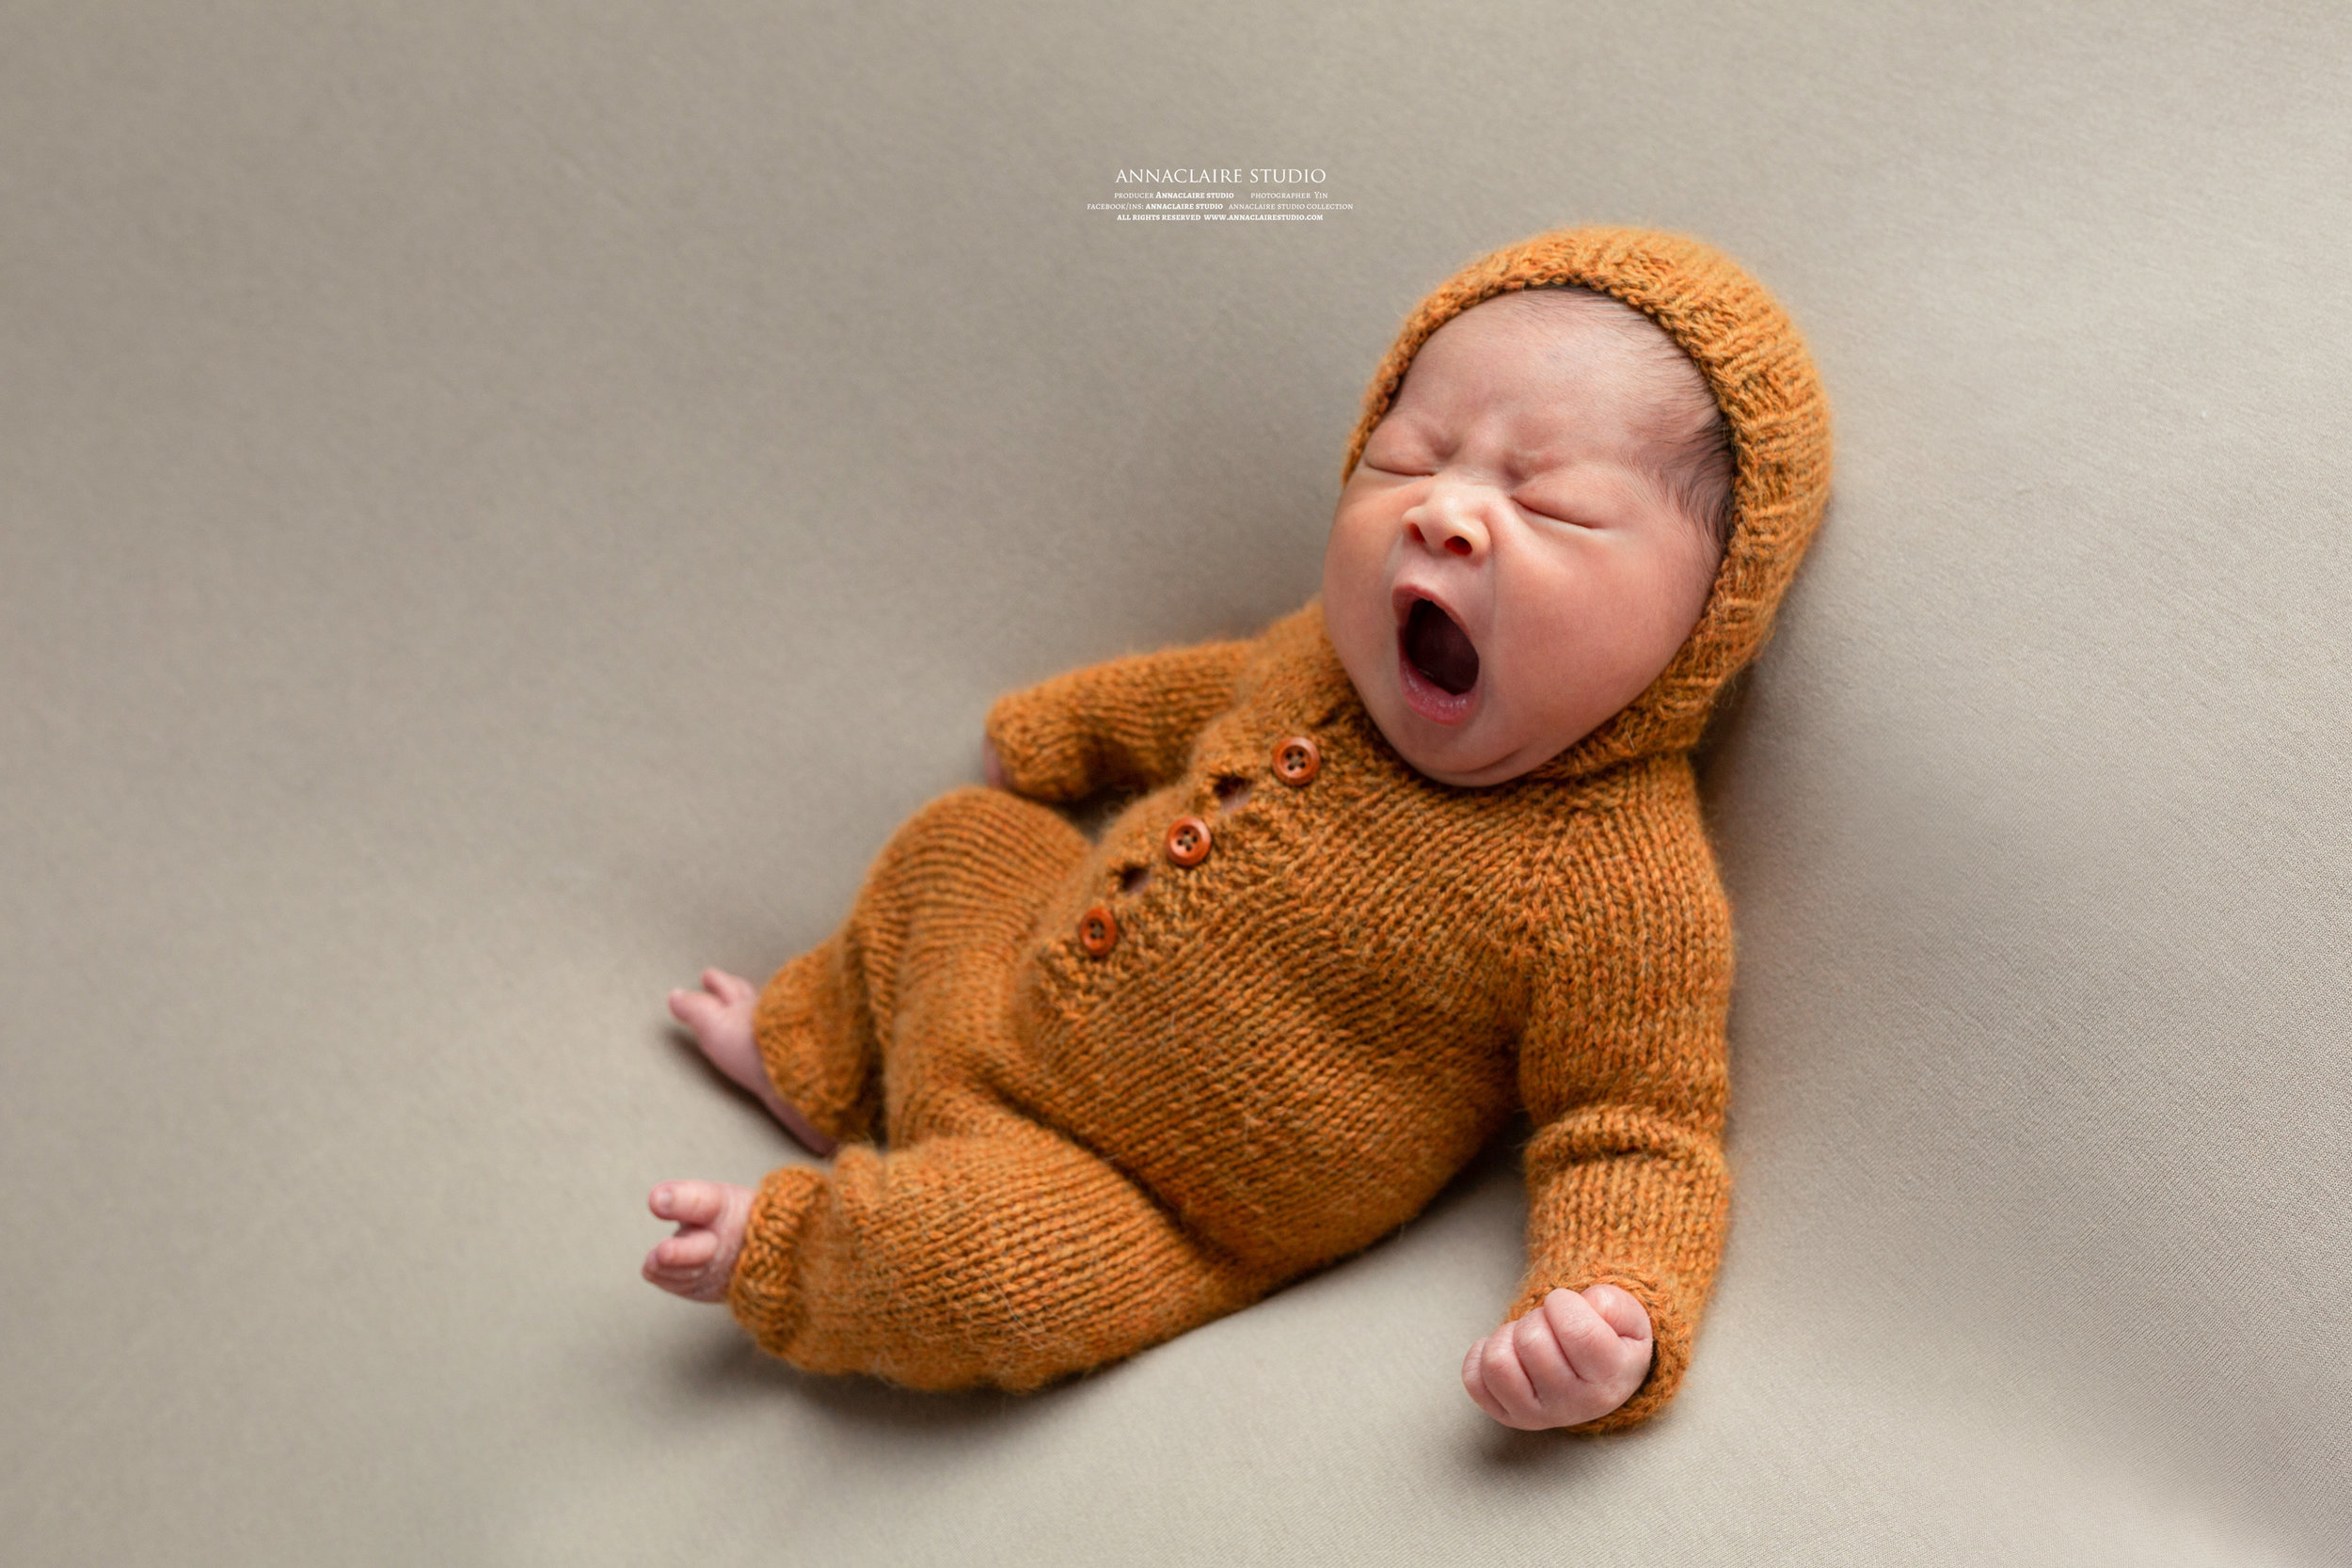 newborn photo by annaclaire studio 新生儿摄影.jpg